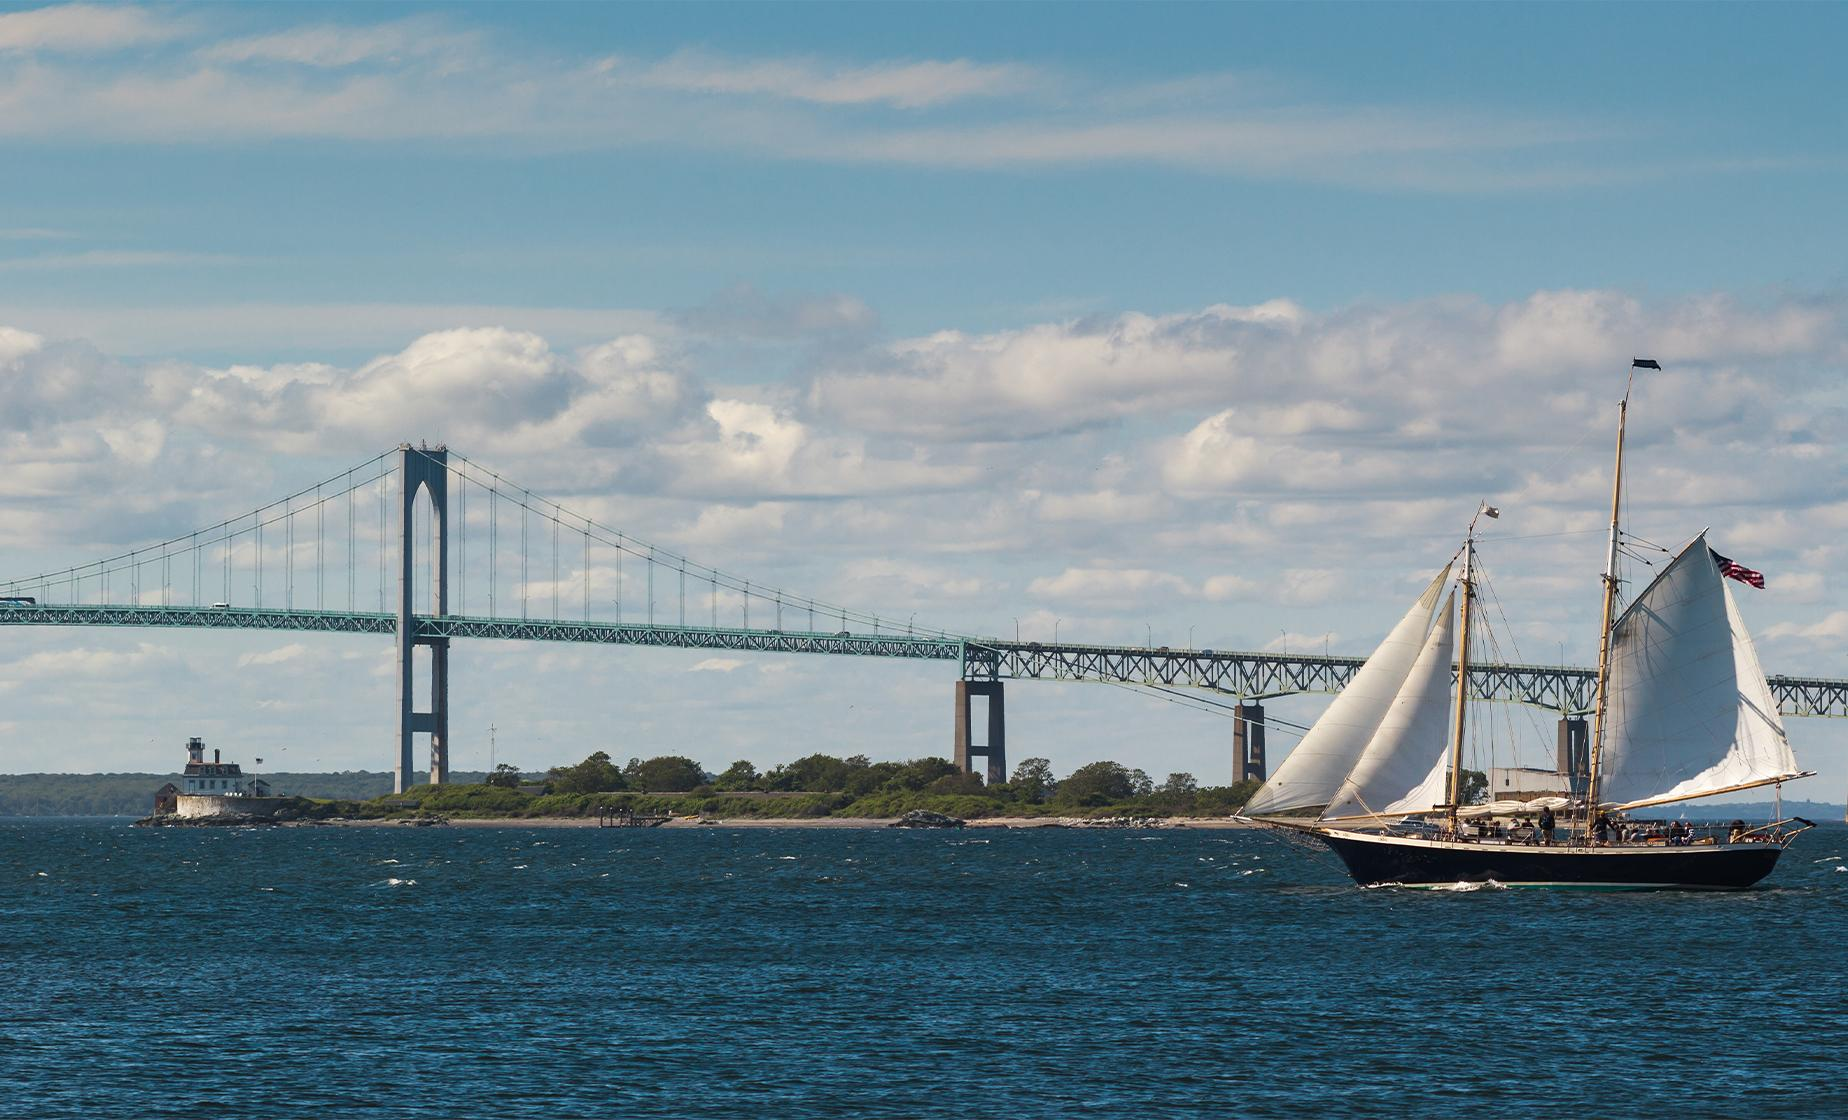 Private Sailing Cruise Aboard the Schooner Aquidneck